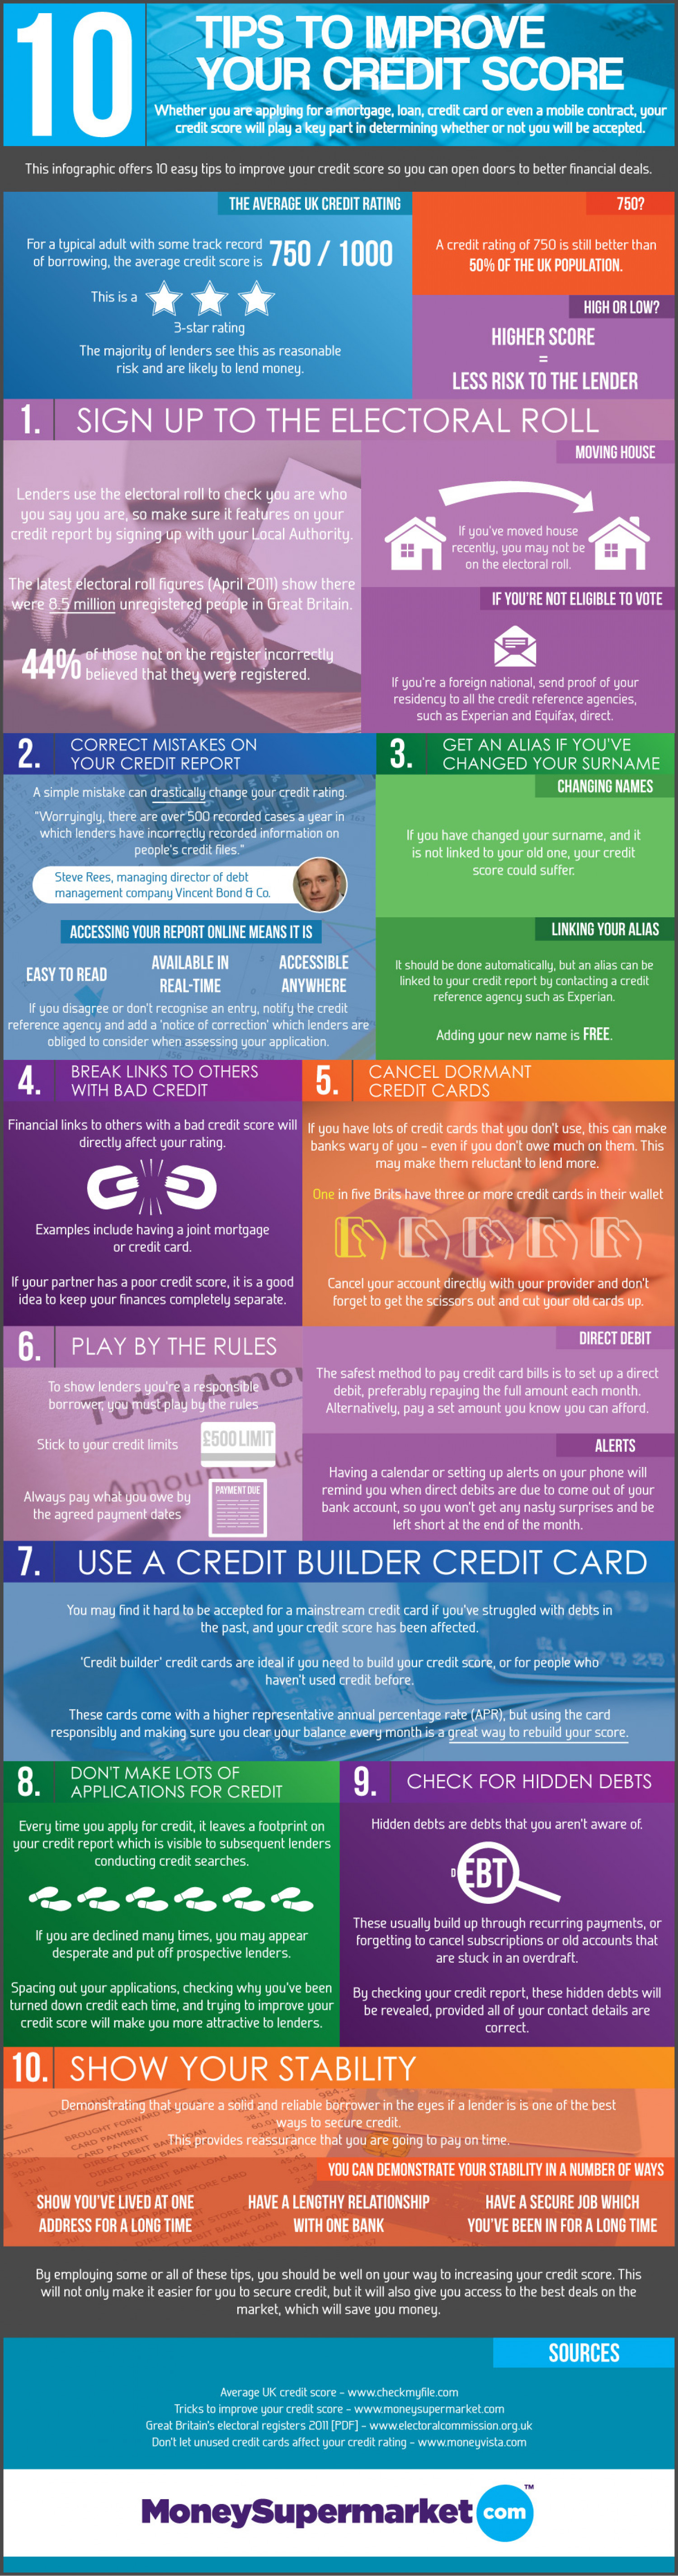 10 Tips to Improve your Credit Score Infographic